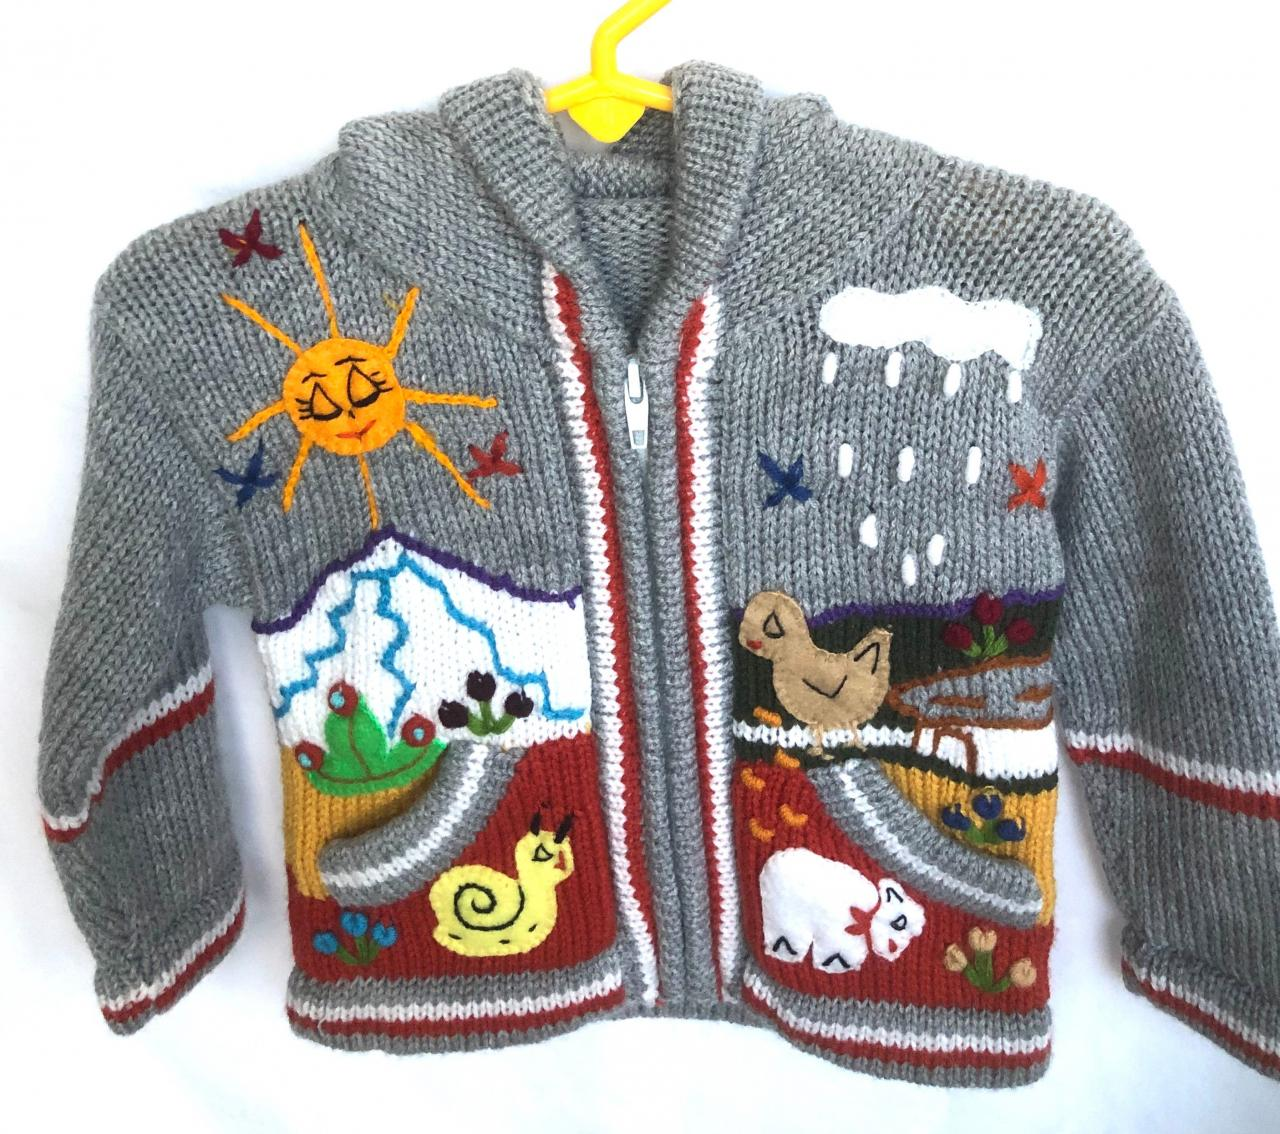 Size 0 Jacket, Kids Jacket, Grey Jacket, Toodler Jacket, Handmade Jacket, Hooded Jacket, Knitwear Jacket, Long Sleeve Jacket, Winter Jacket